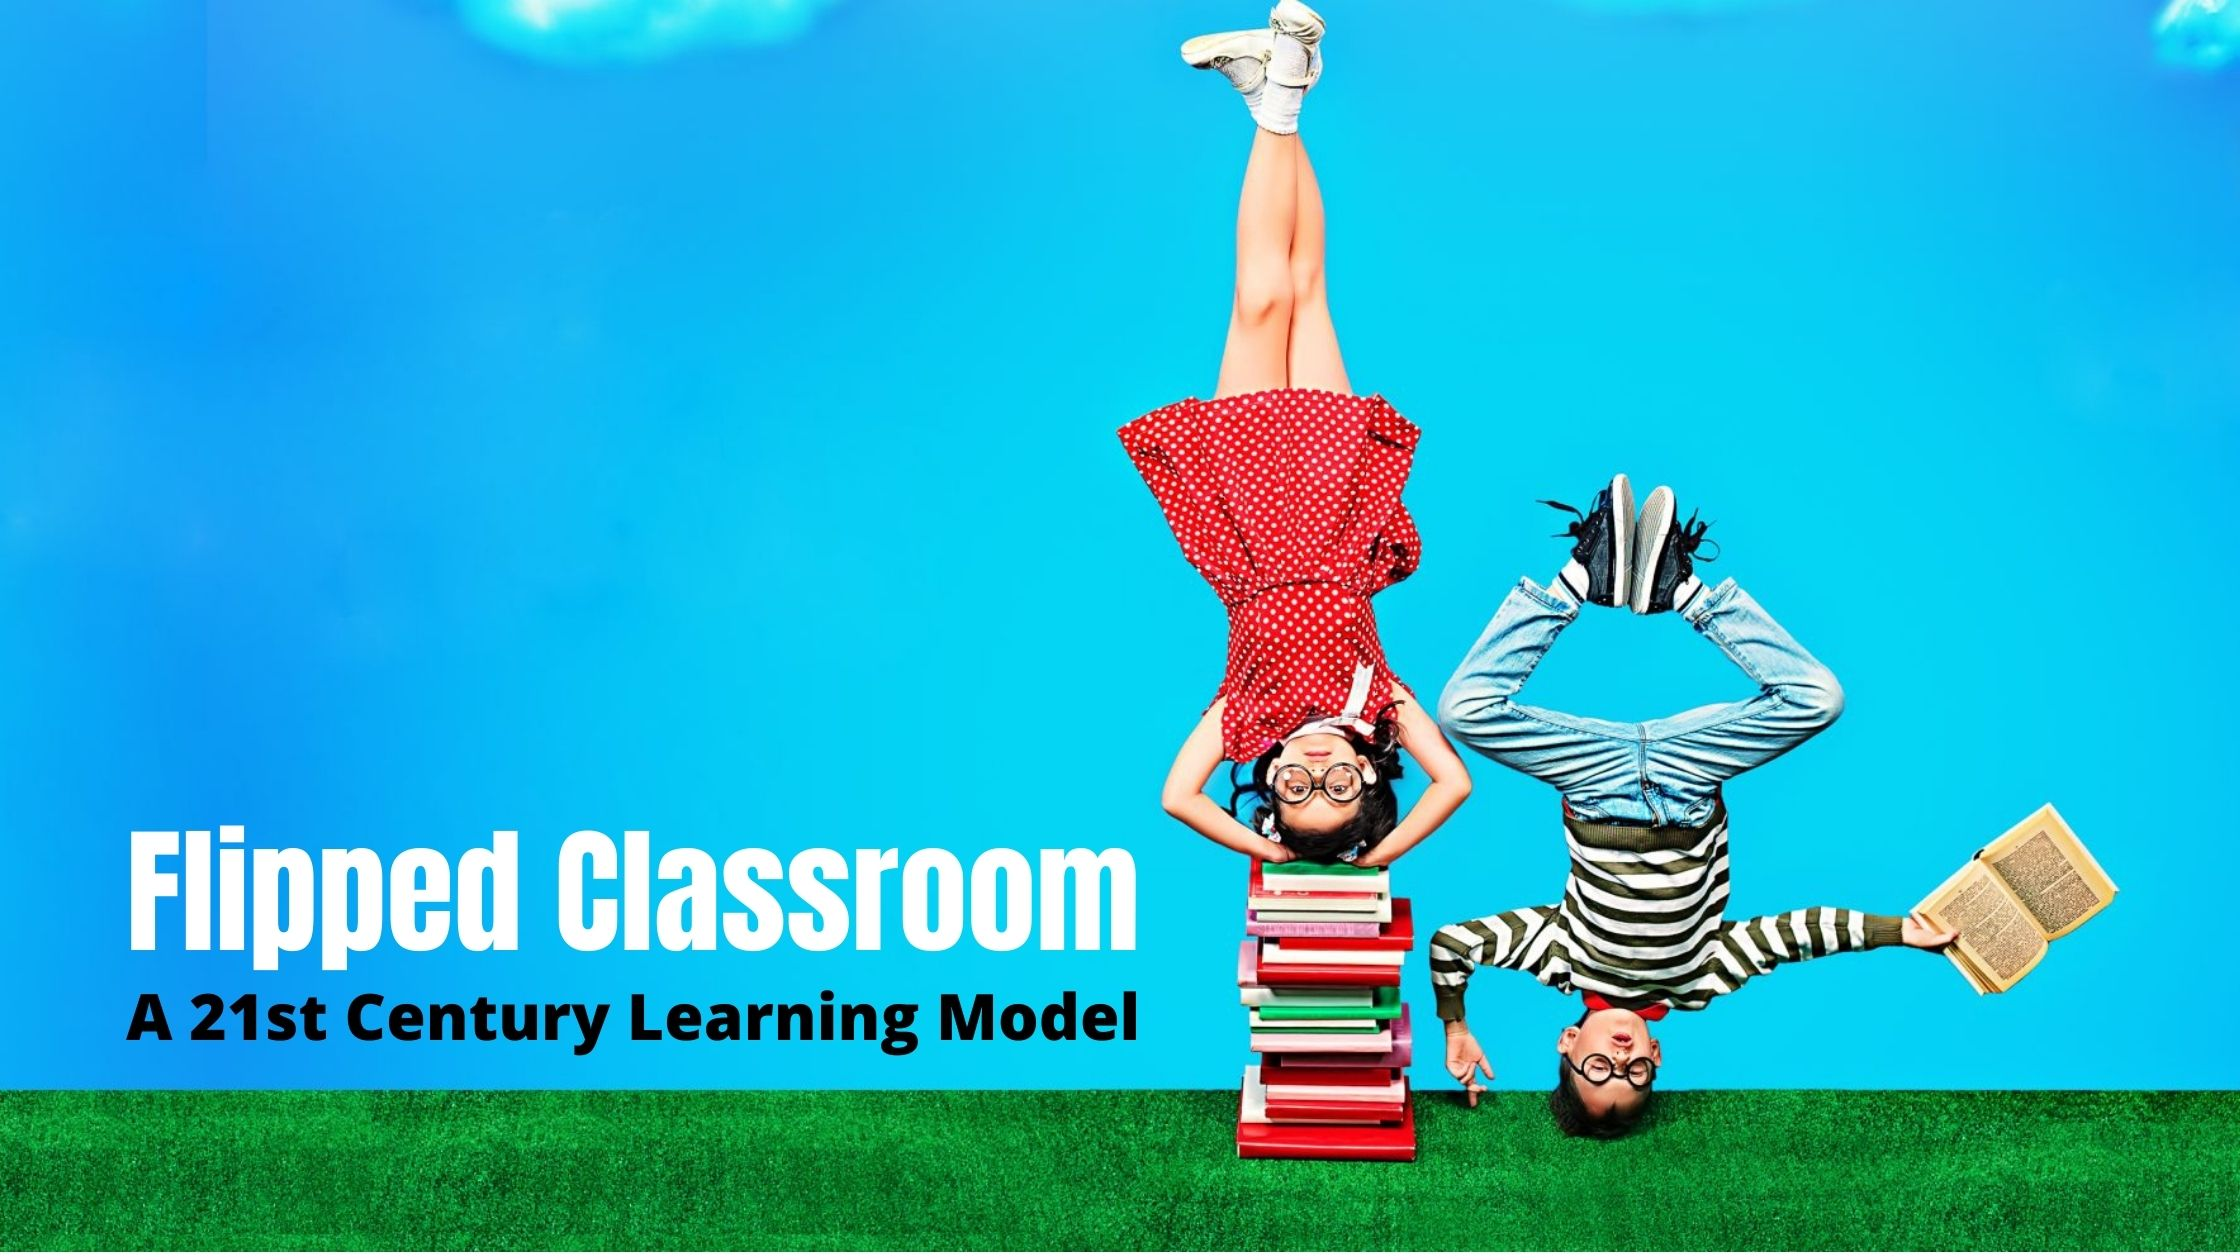 Flipped C;assrooms - A 21st Century Learning Model